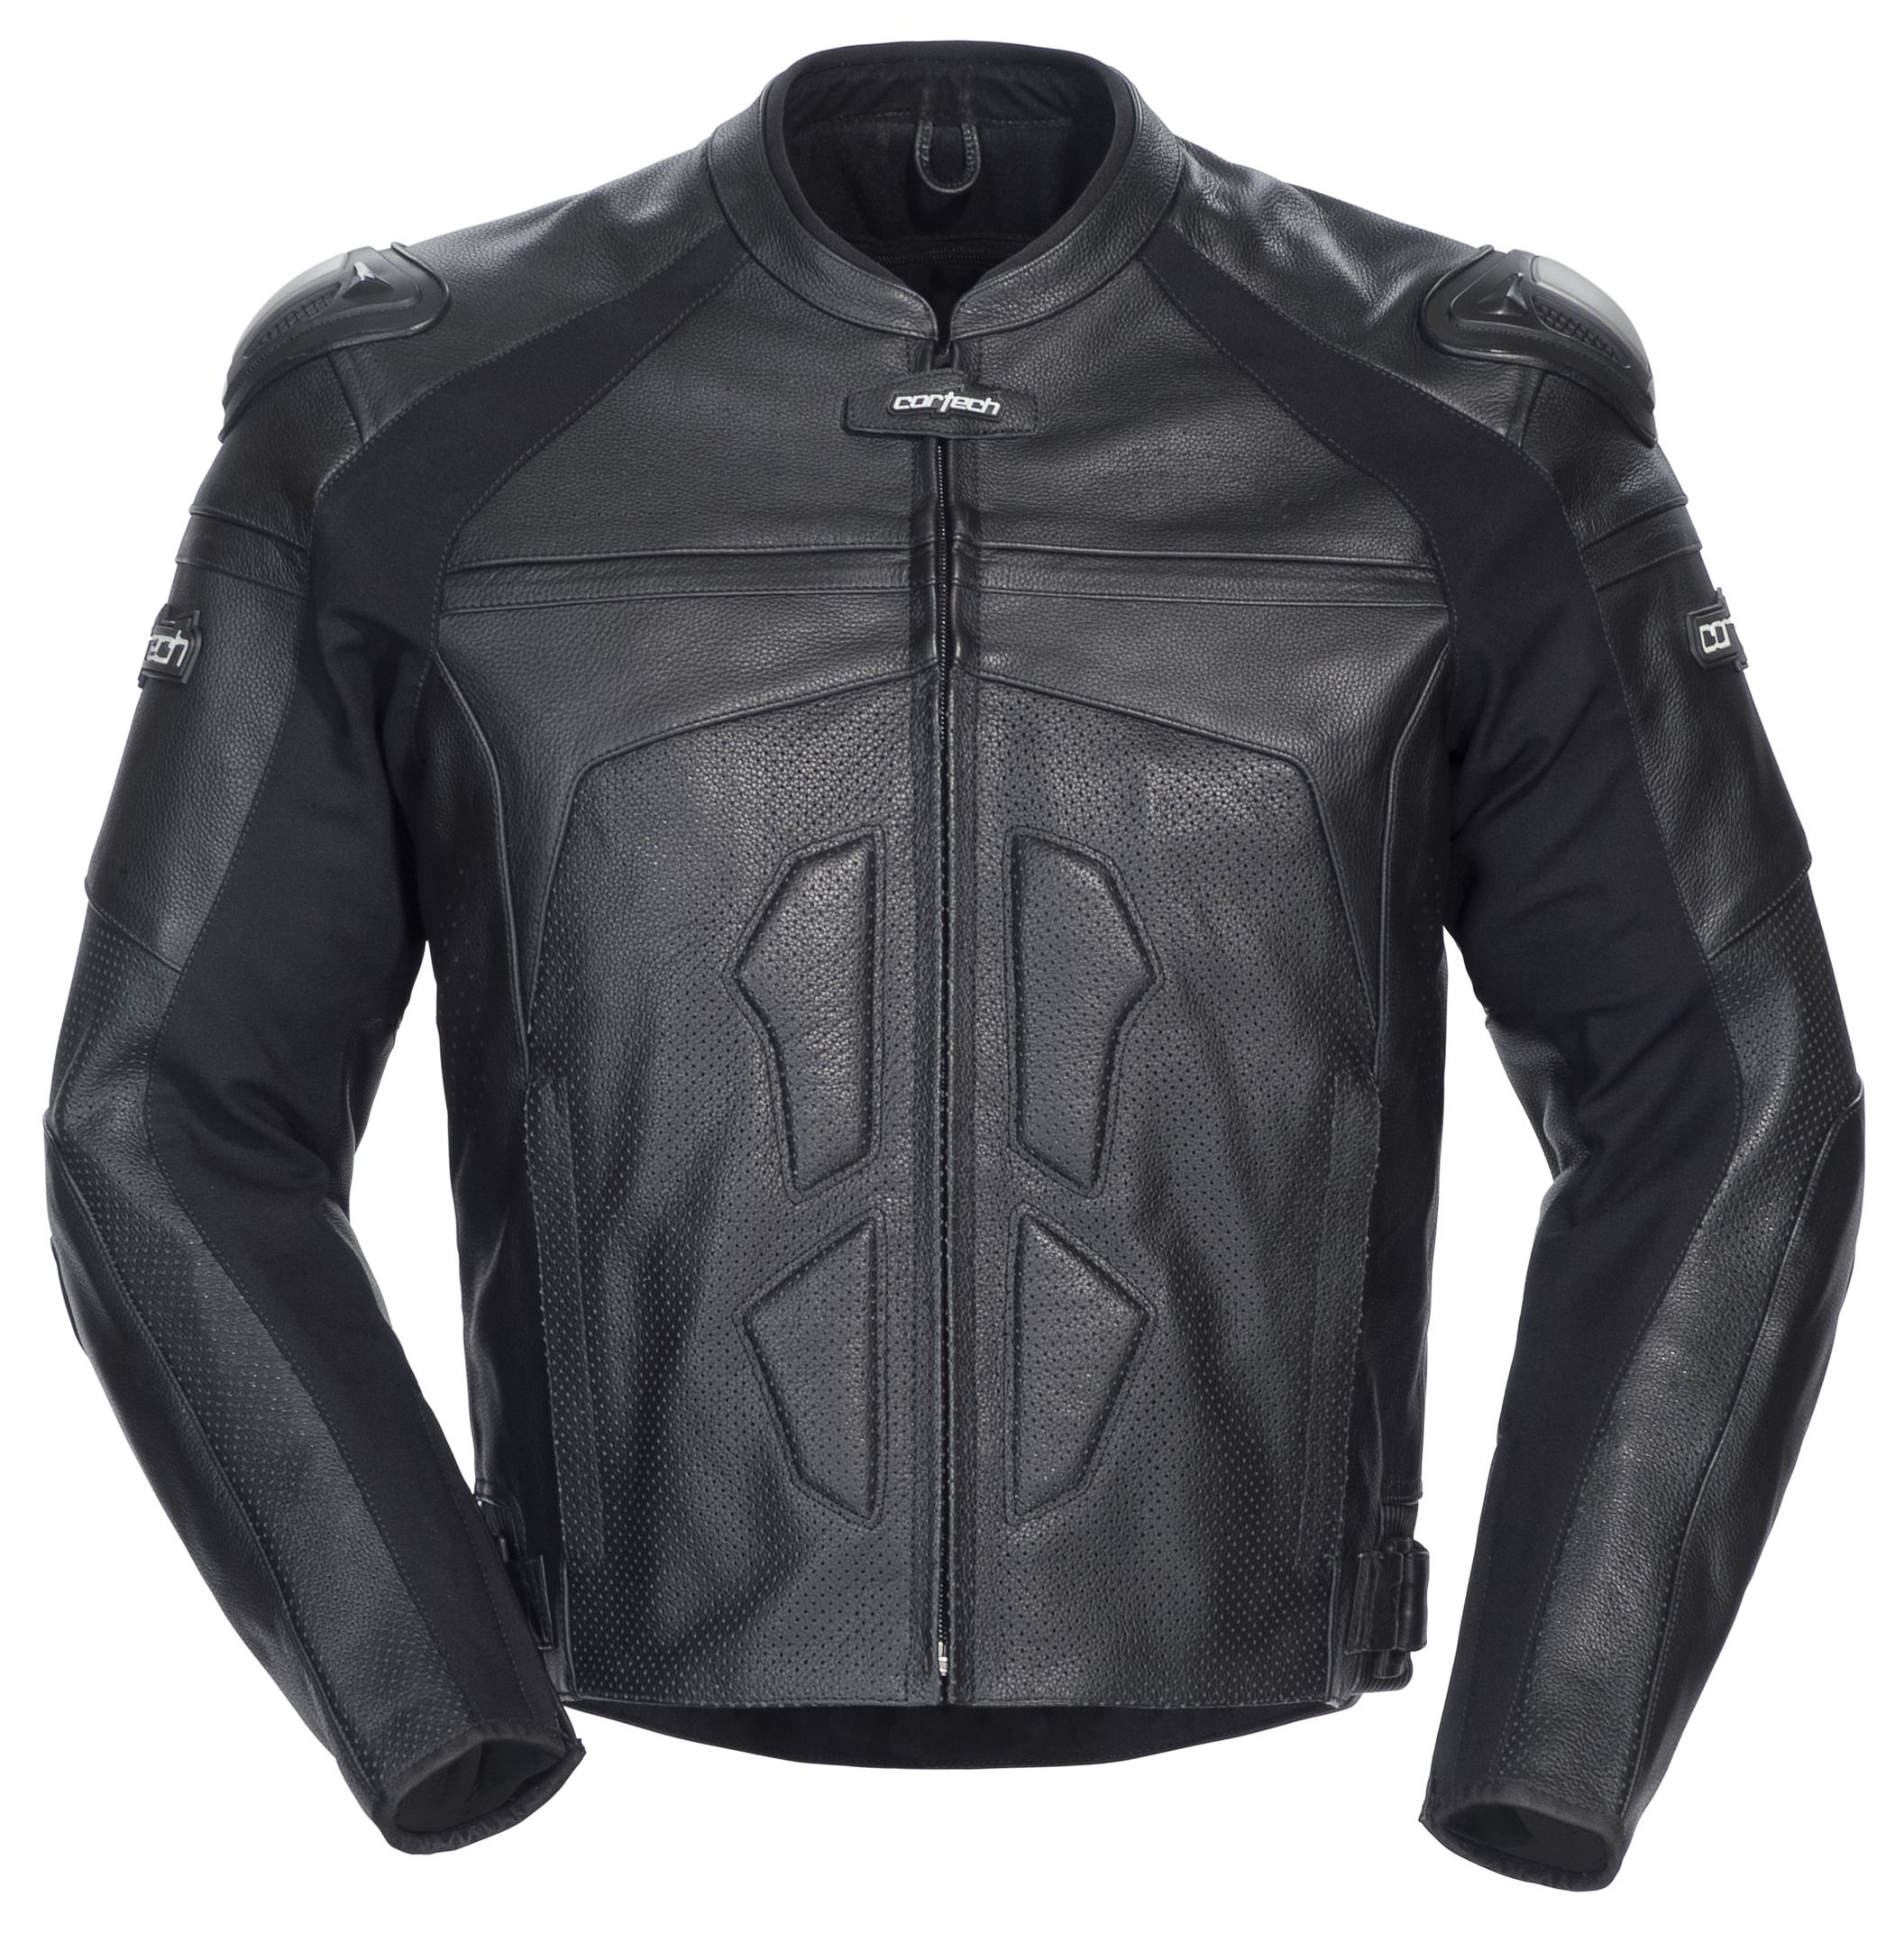 Leather jacket for motorcycle riding - Leather Jacket For Motorcycle Riding 29